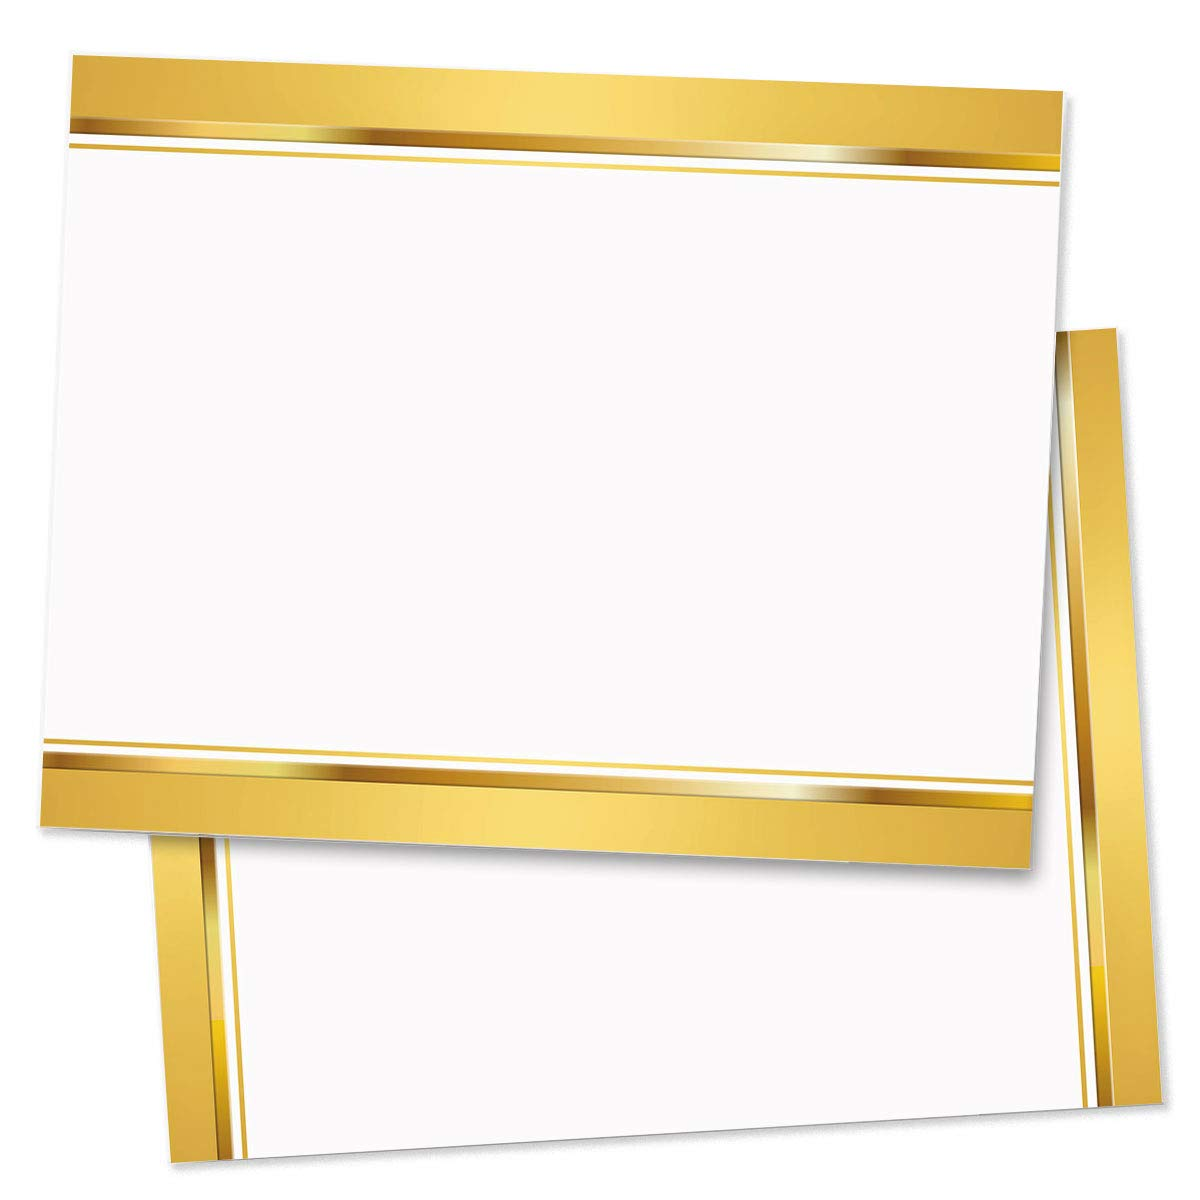 Golden Postcards, Standard Size, 100 Count by PaperDirect